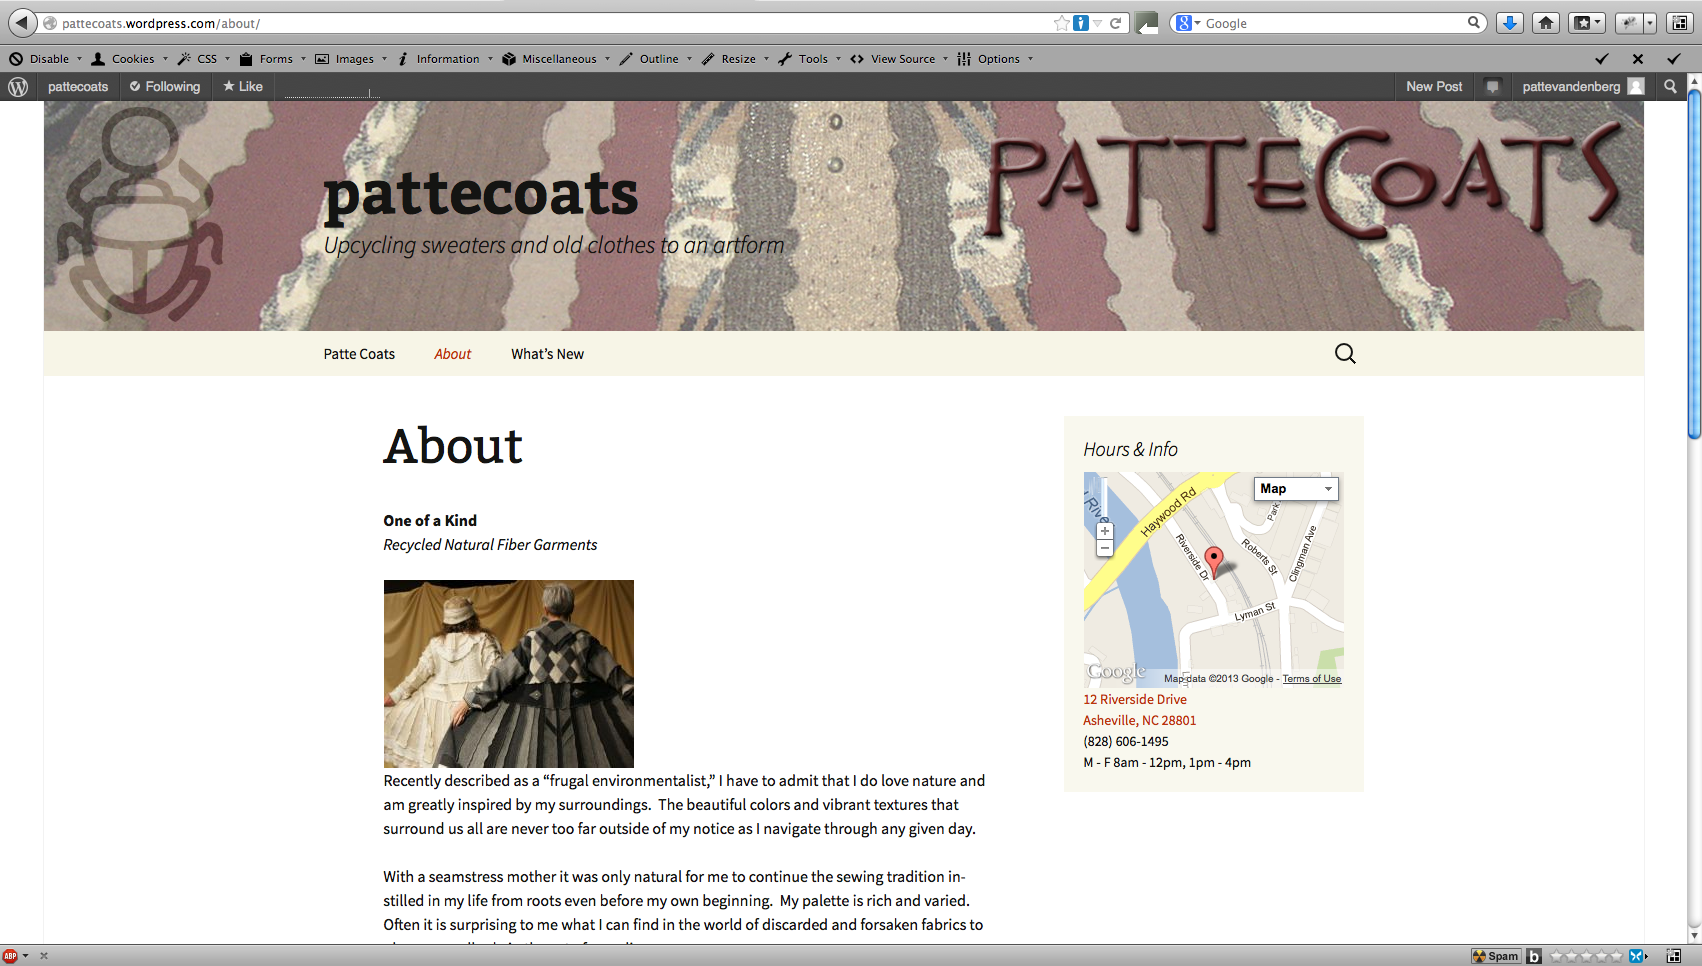 pattecoats-about